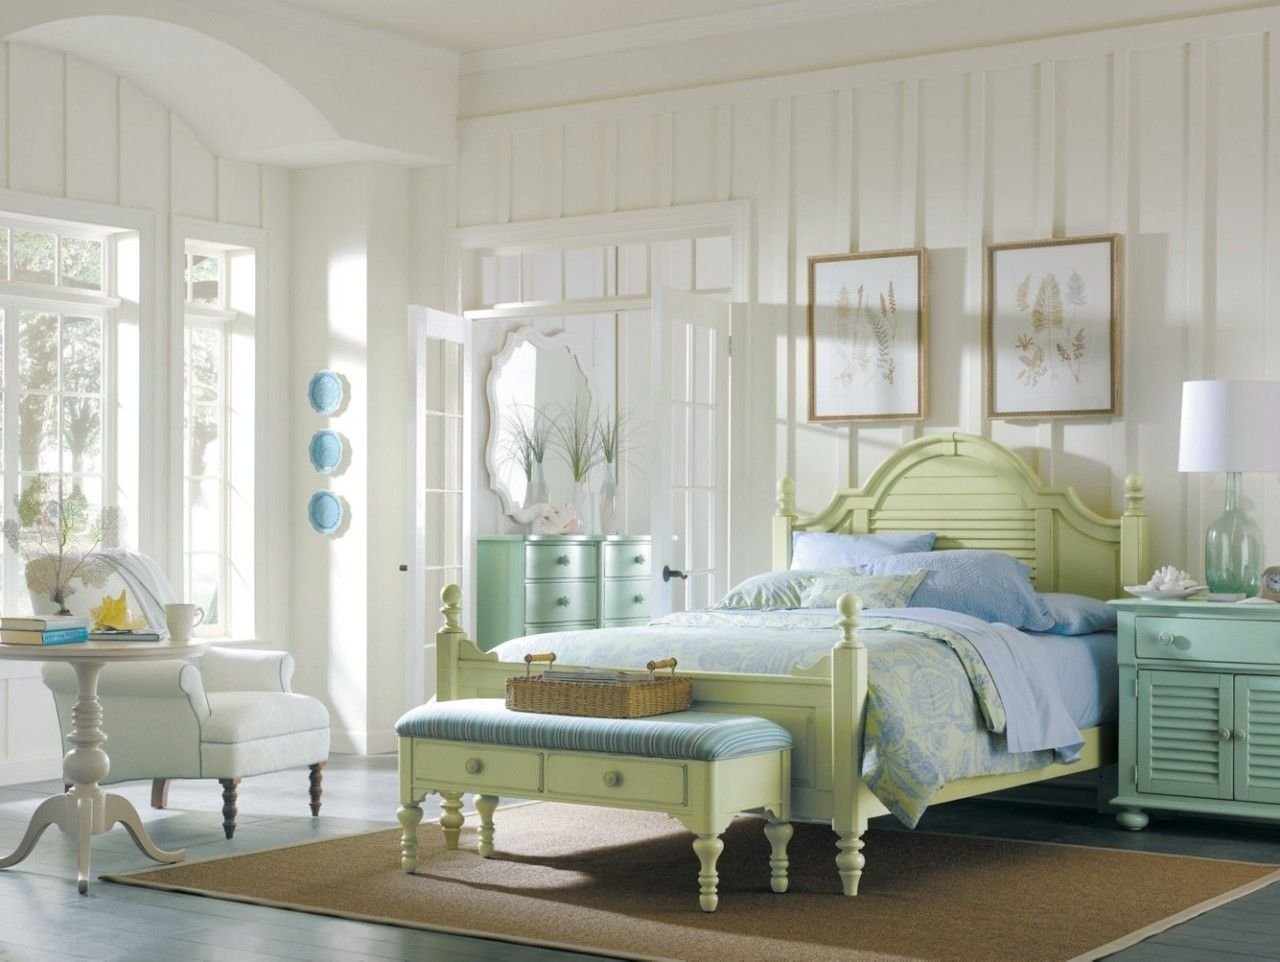 Lexington Seaside Retreat Furniture To Consider Getting